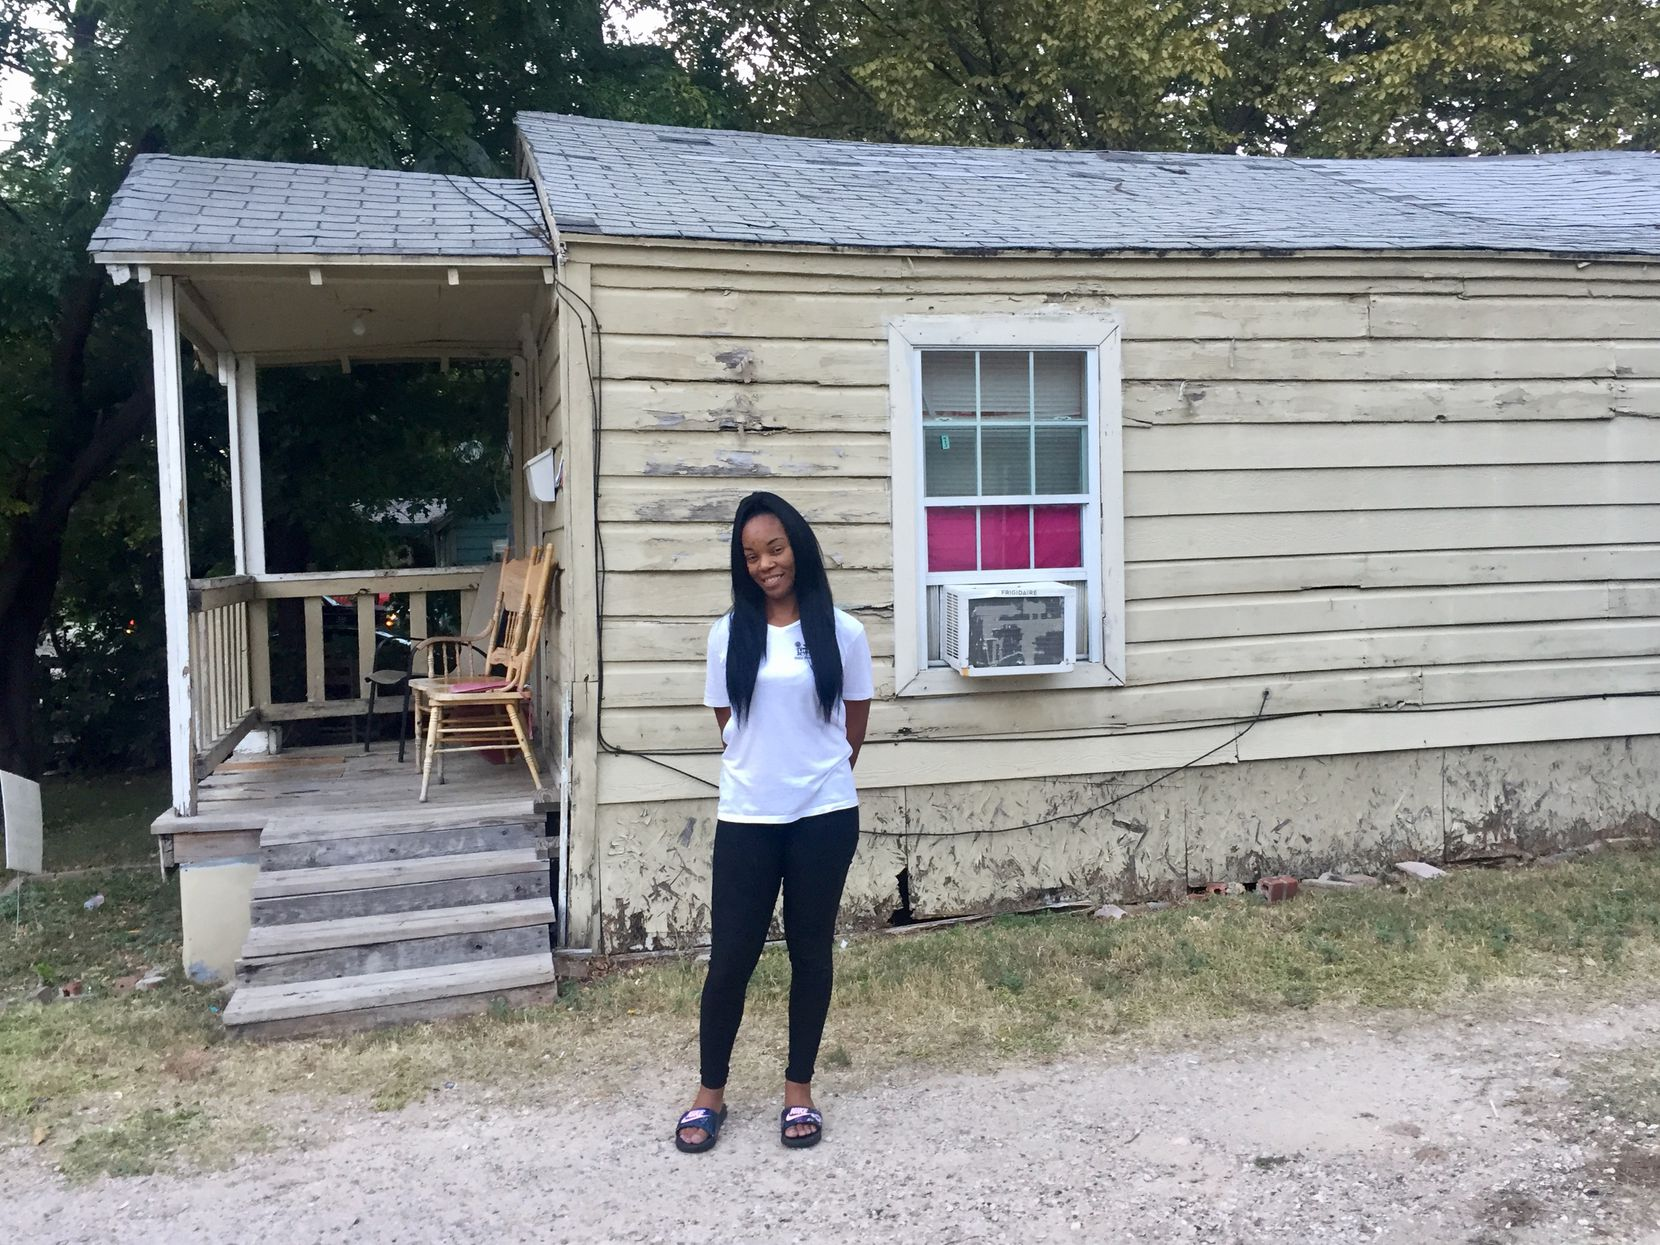 Ashton Elder stands before her newly purchased home. She was an HMK tenant until she bought her 680-square-foot rental in July of this year. (Dianne Solis/The Dallas Morning News)